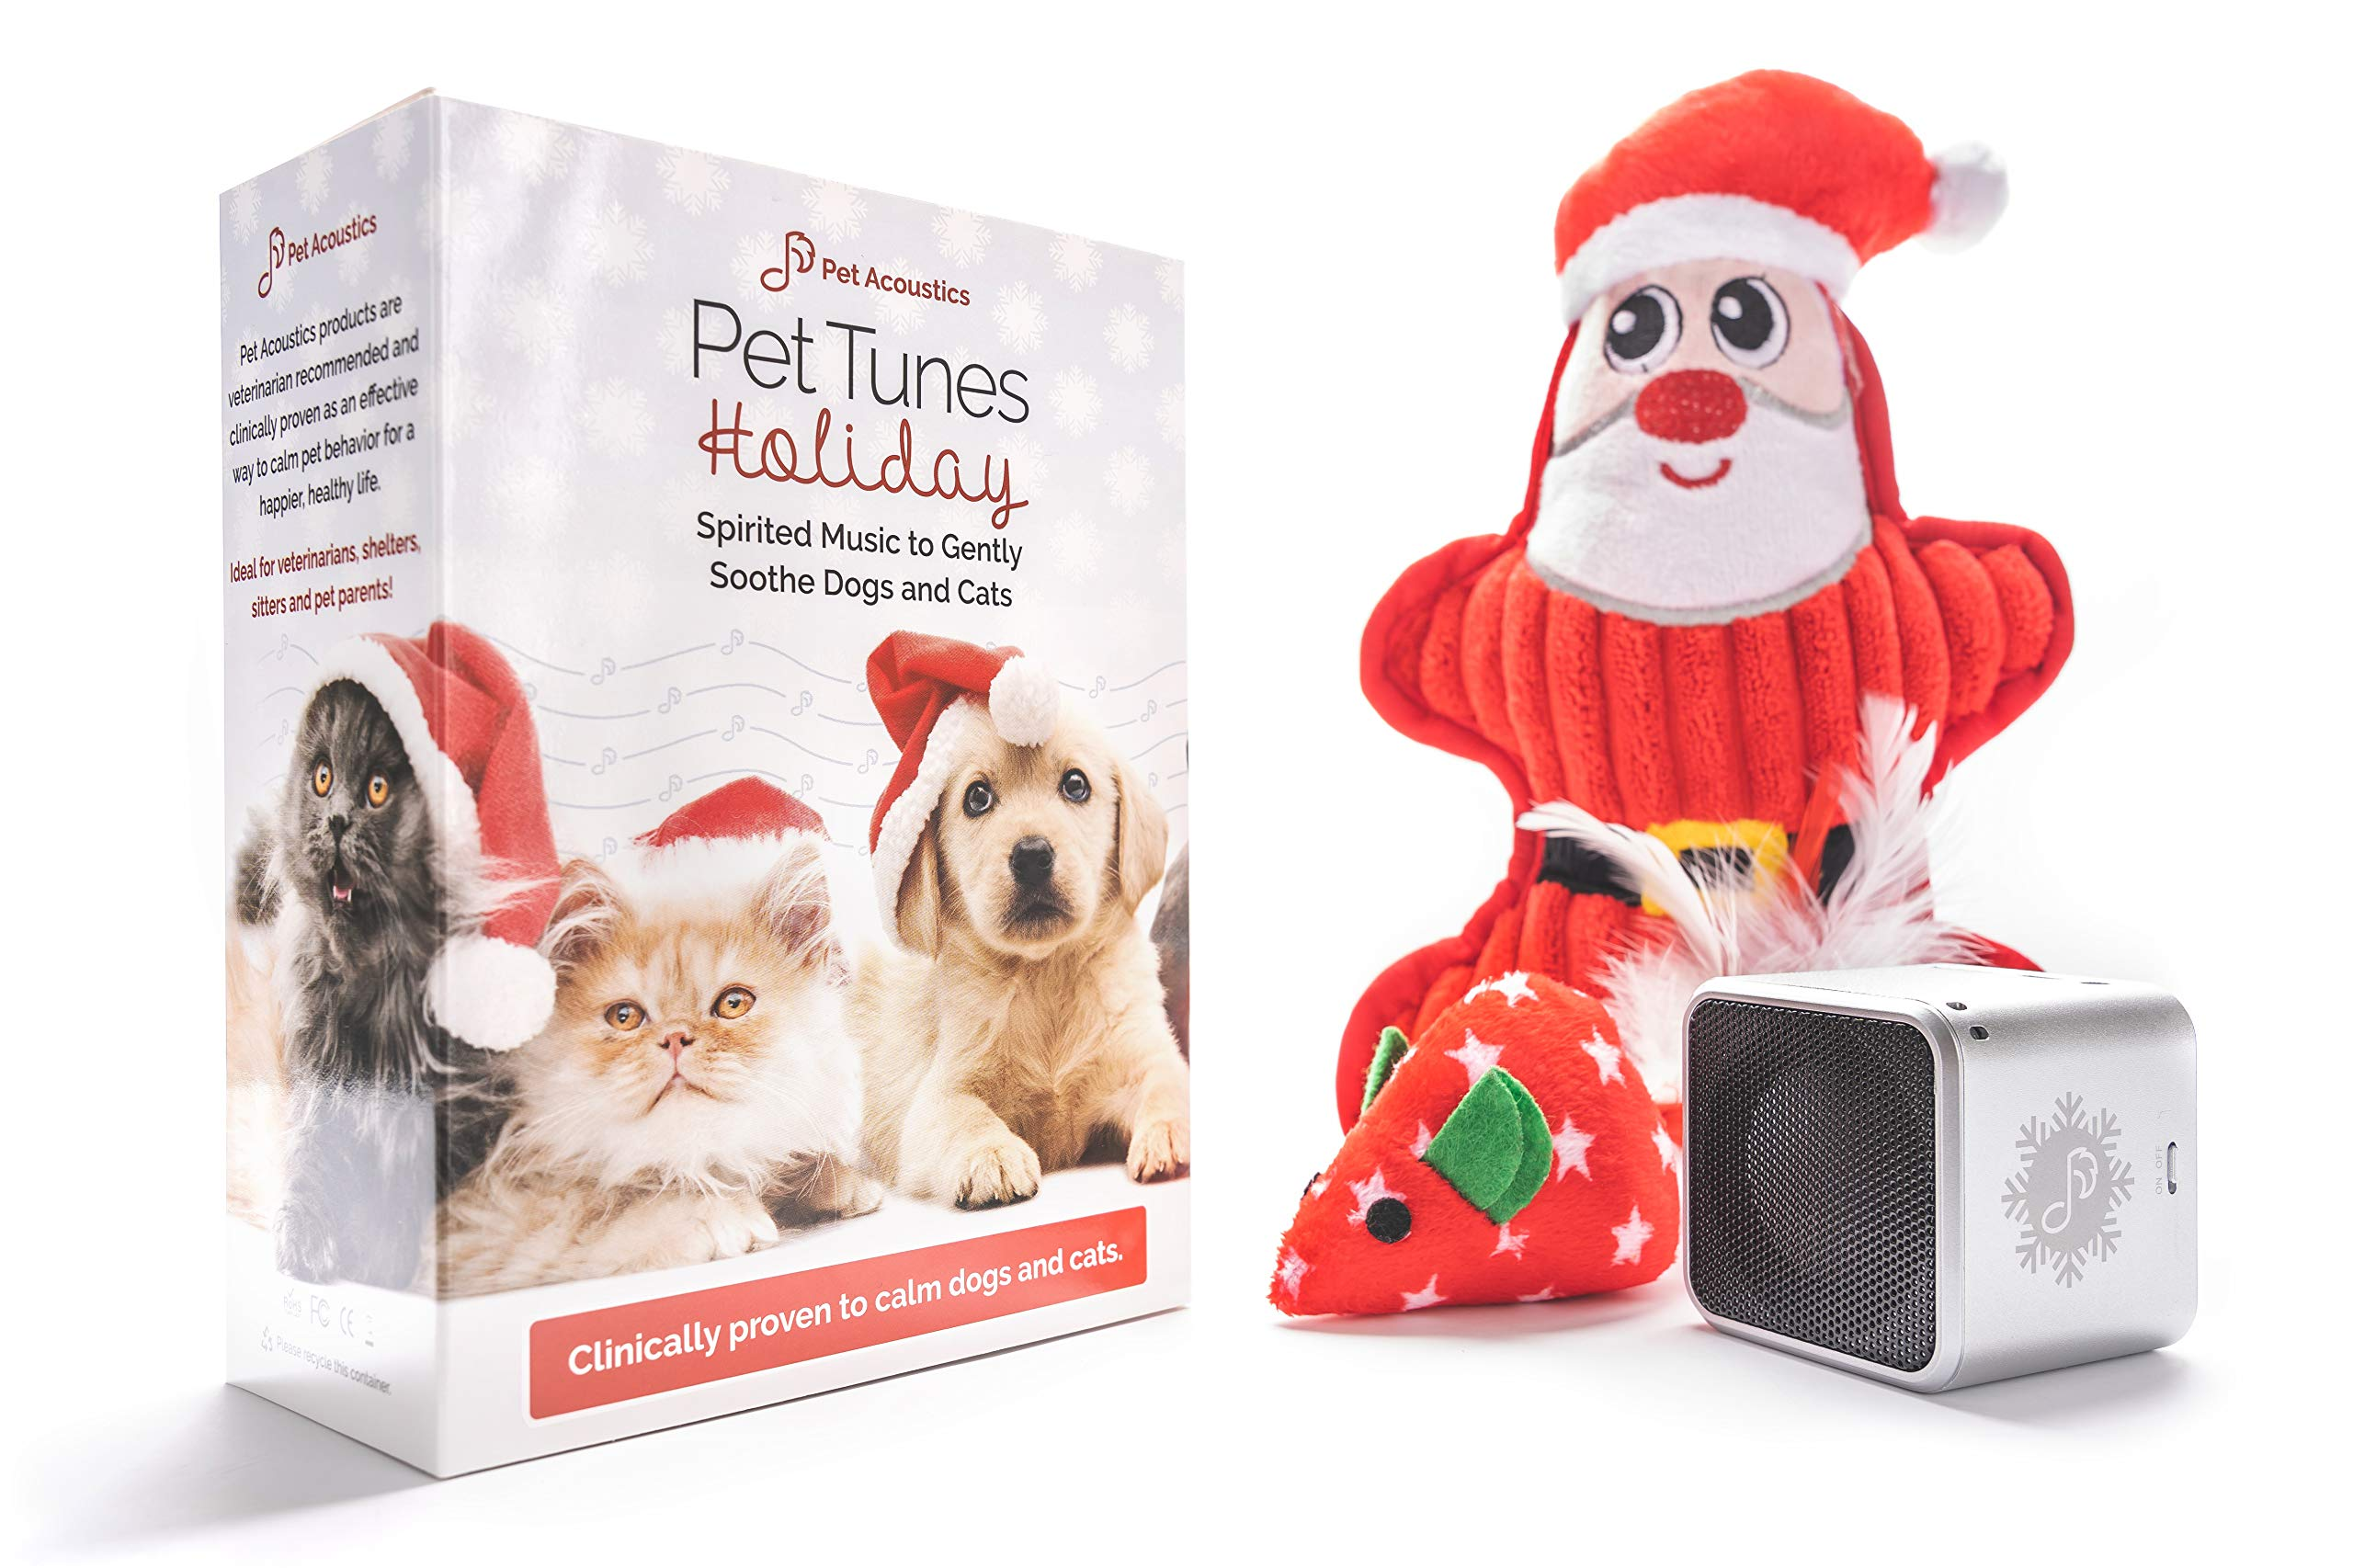 Pet Acoustics Pet Tunes Holiday Music Pet Gift Pack: pre-Loaded Calming Music, Dog Toy, Cat Toy by Pet Acoustics